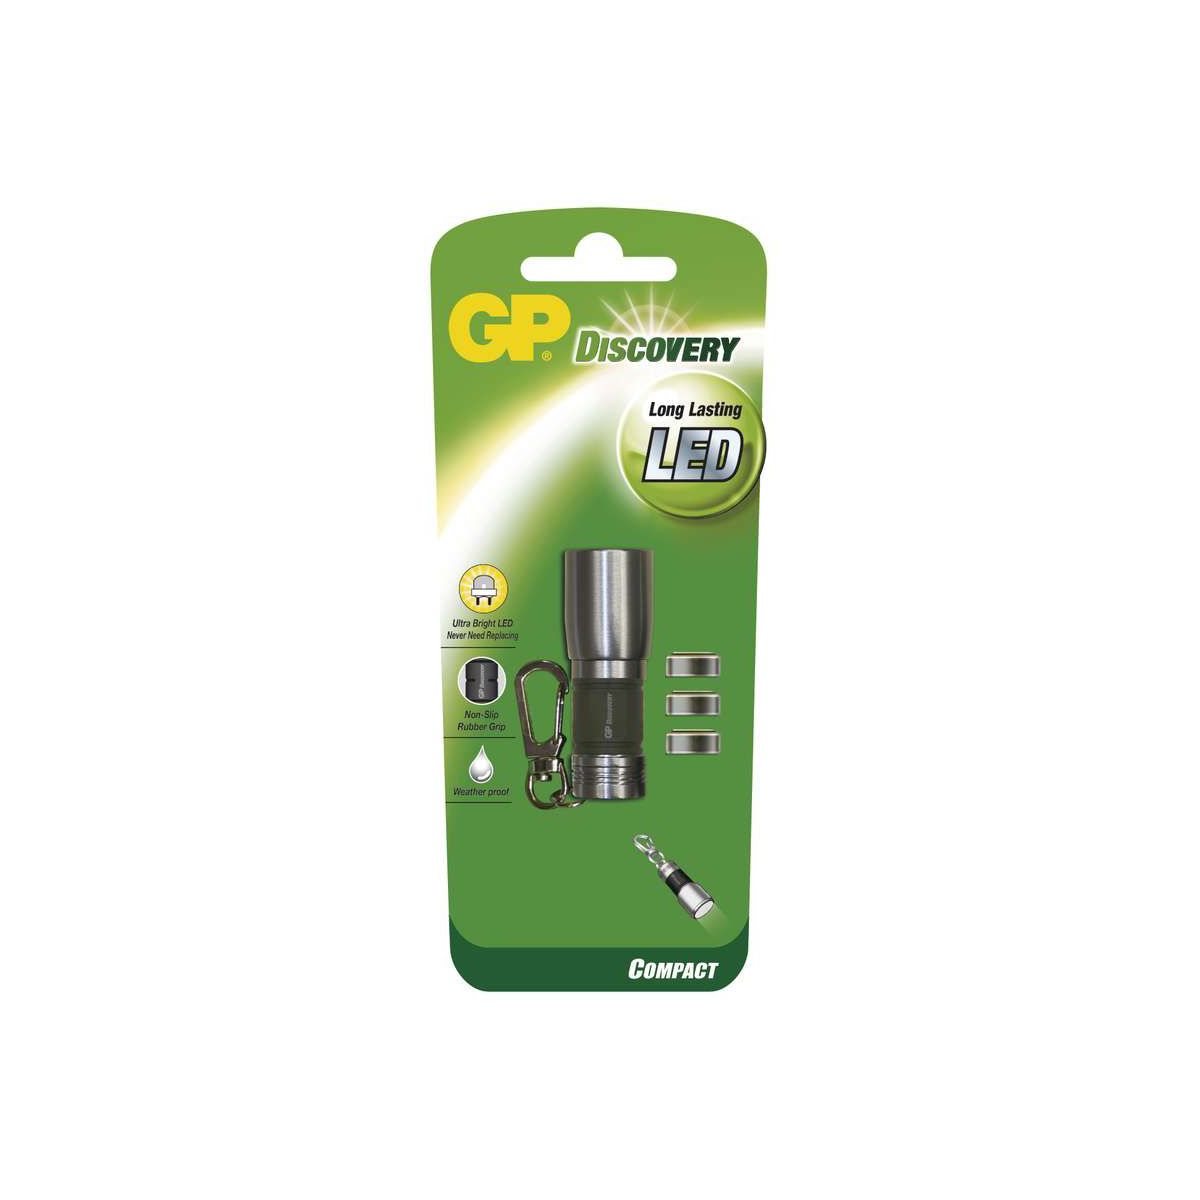 Torche gp discovery long lasting led + 3 (photo)